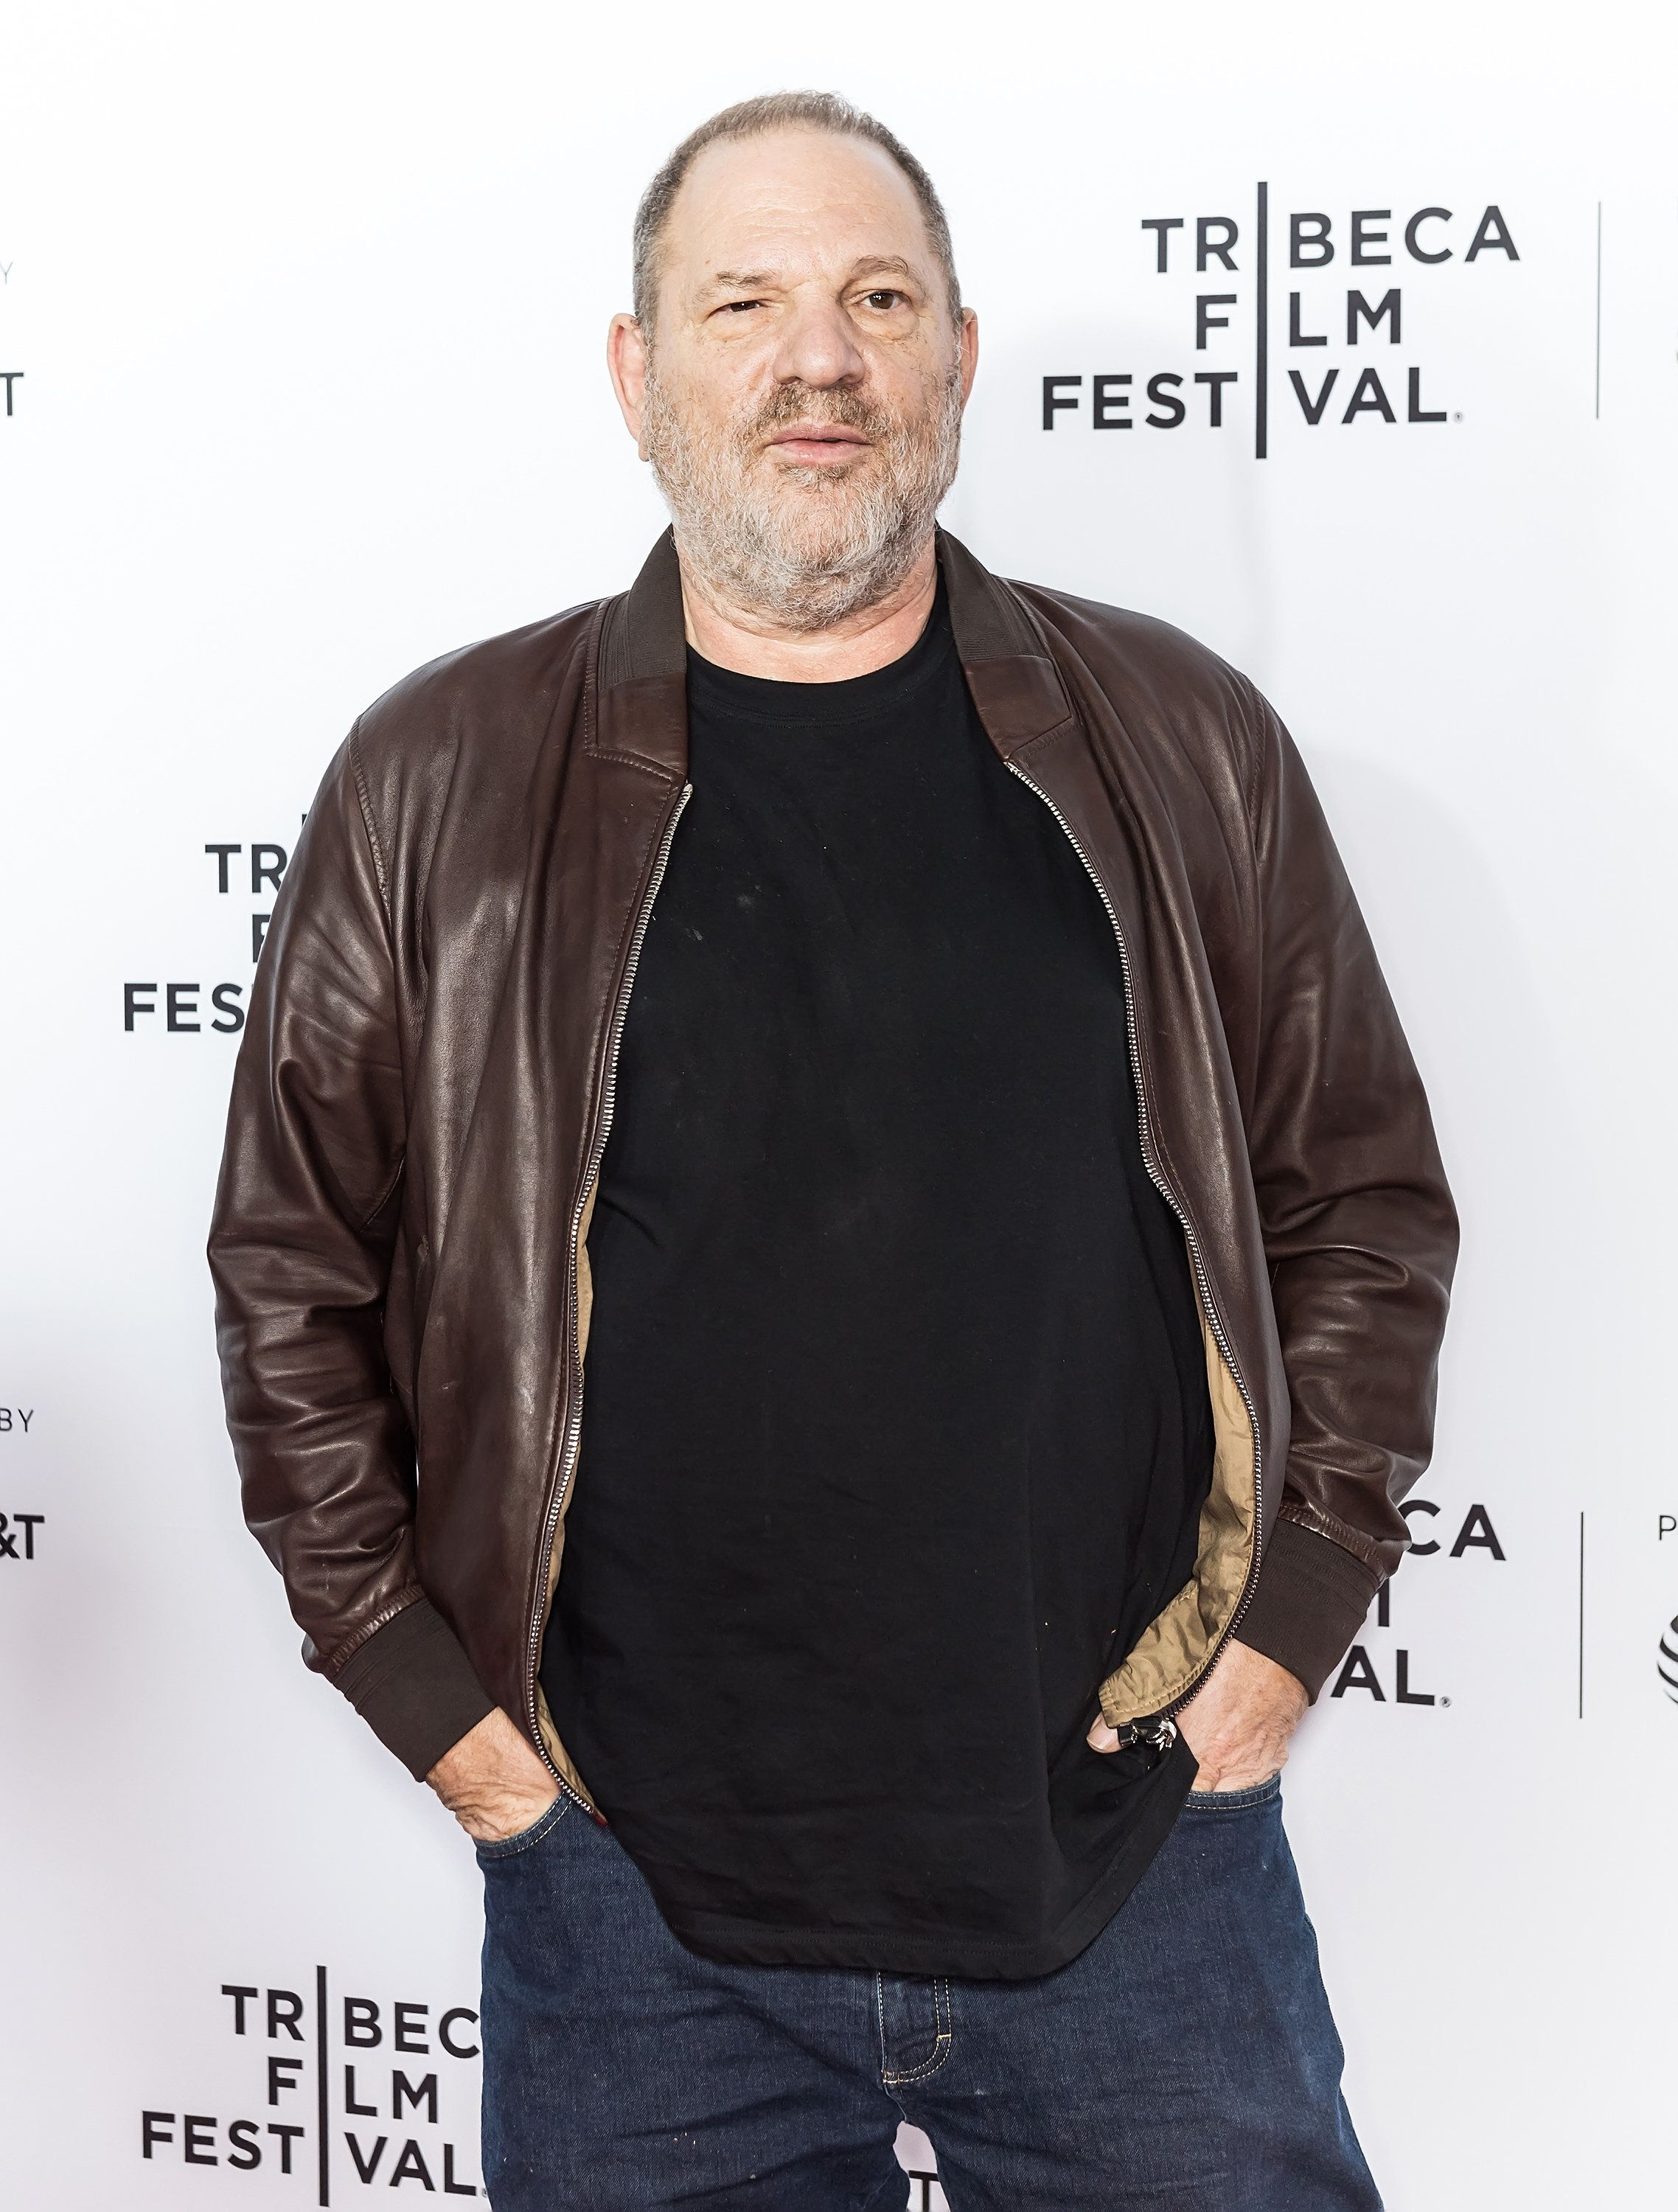 NEW YORK, NY - APRIL 28:  Film Producer Harvey Weinstein attends 'Reservoir Dogs' 25th Anniversary Screening during 2017 Tribeca Film Festival at The Beacon Theatre on April 28, 2017 in New York City.  (Photo by Gilbert Carrasquillo/FilmMagic)